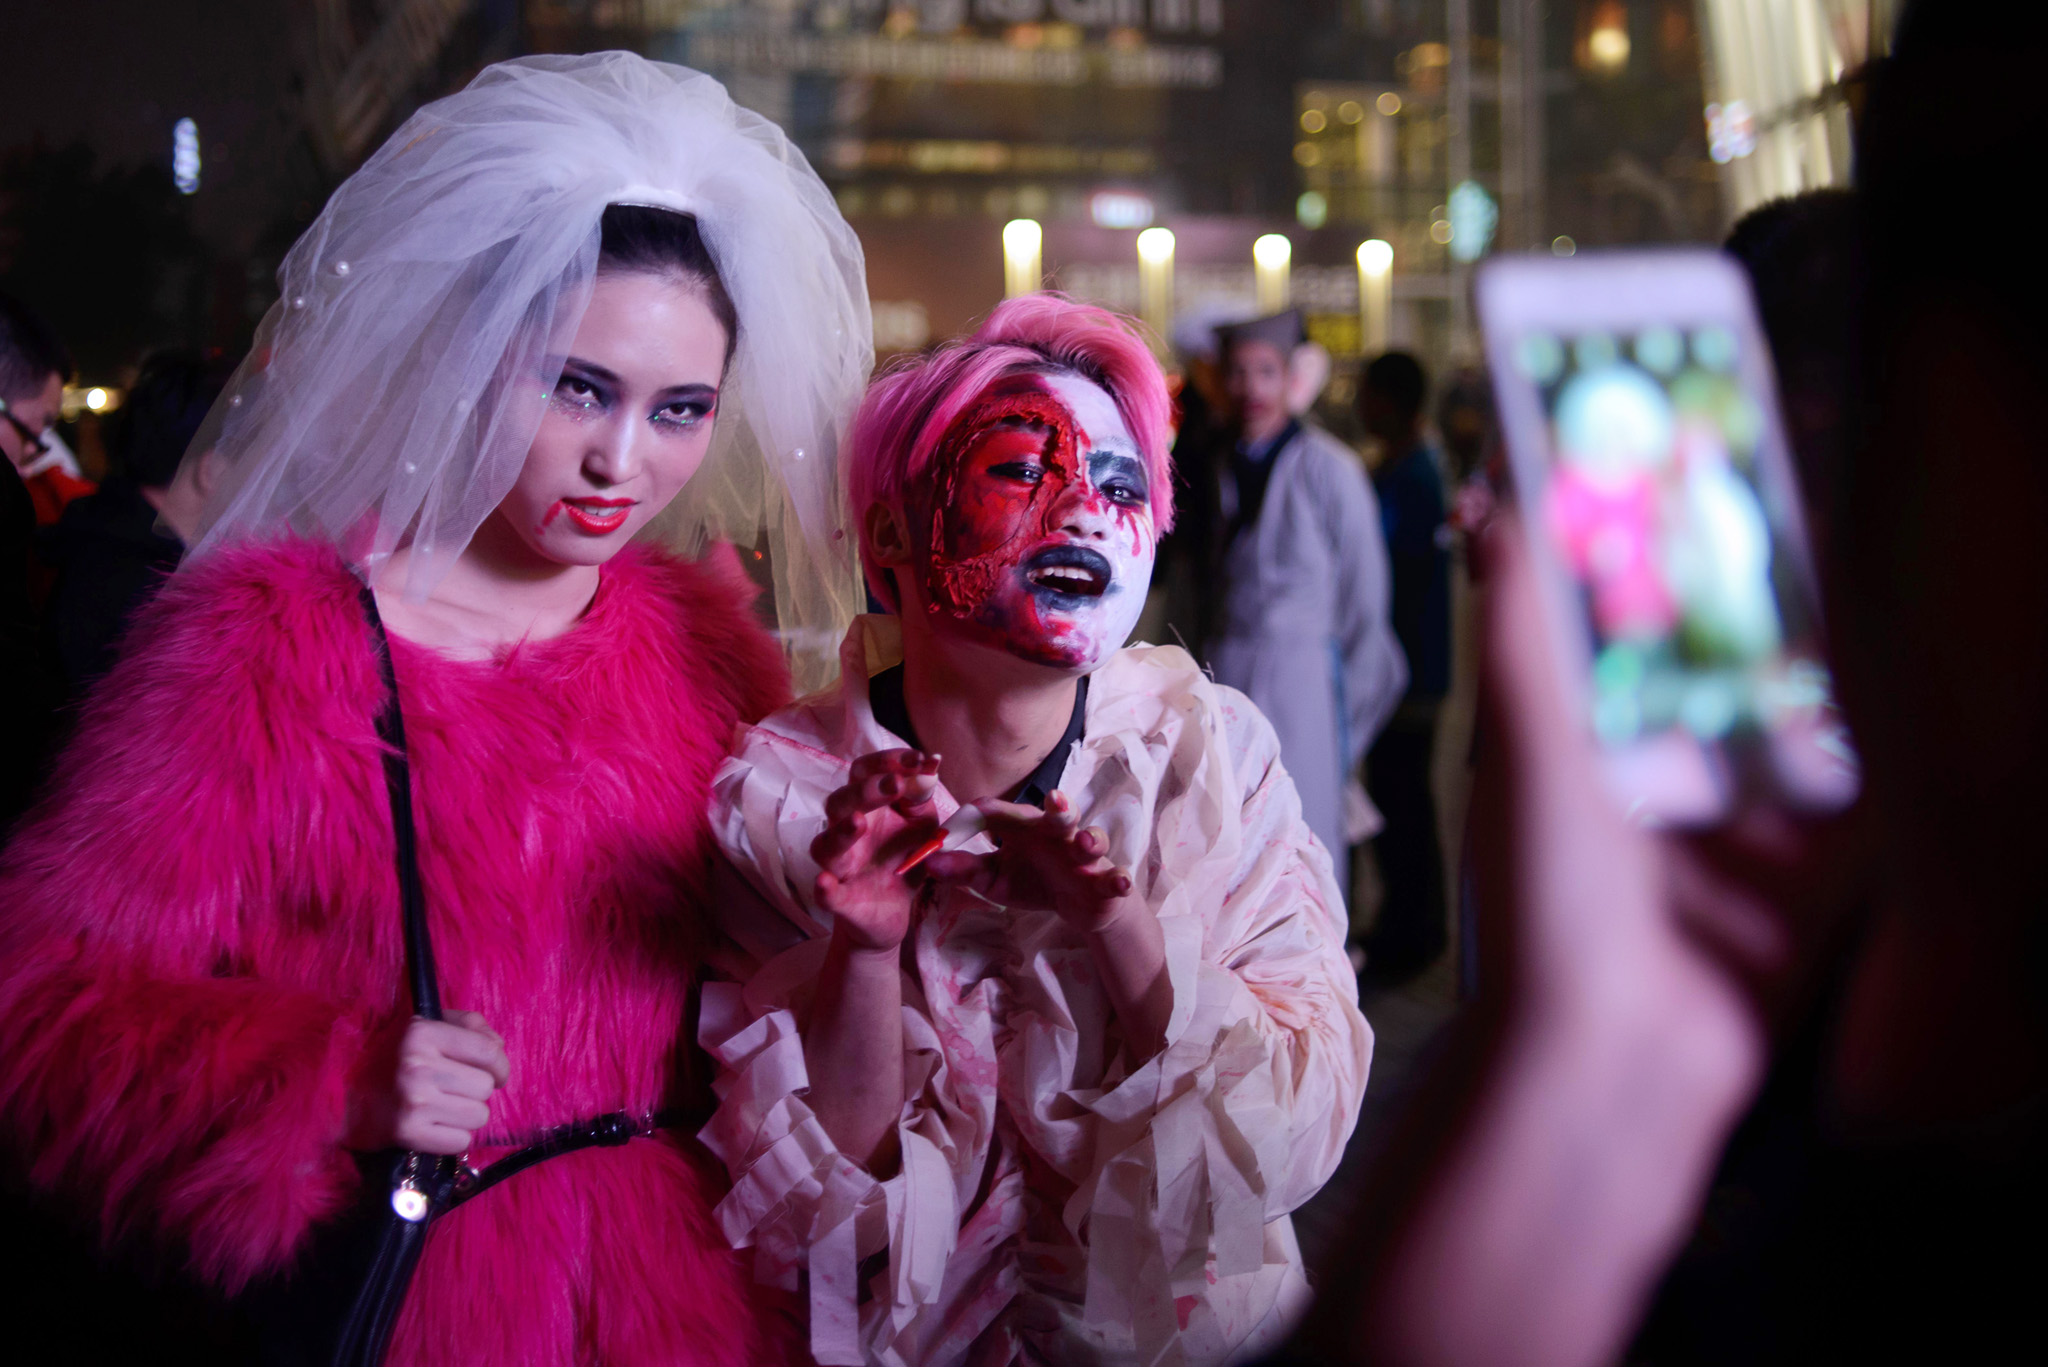 CHINA-LIFESTYLE-HALLOWEEN...Revellers in costume pose for photos as they celebrate Halloween in Beijing on October 31, 2013. AFP PHOTO / ED JONES        (Photo credit should read Ed Jones/AFP/Getty Images)